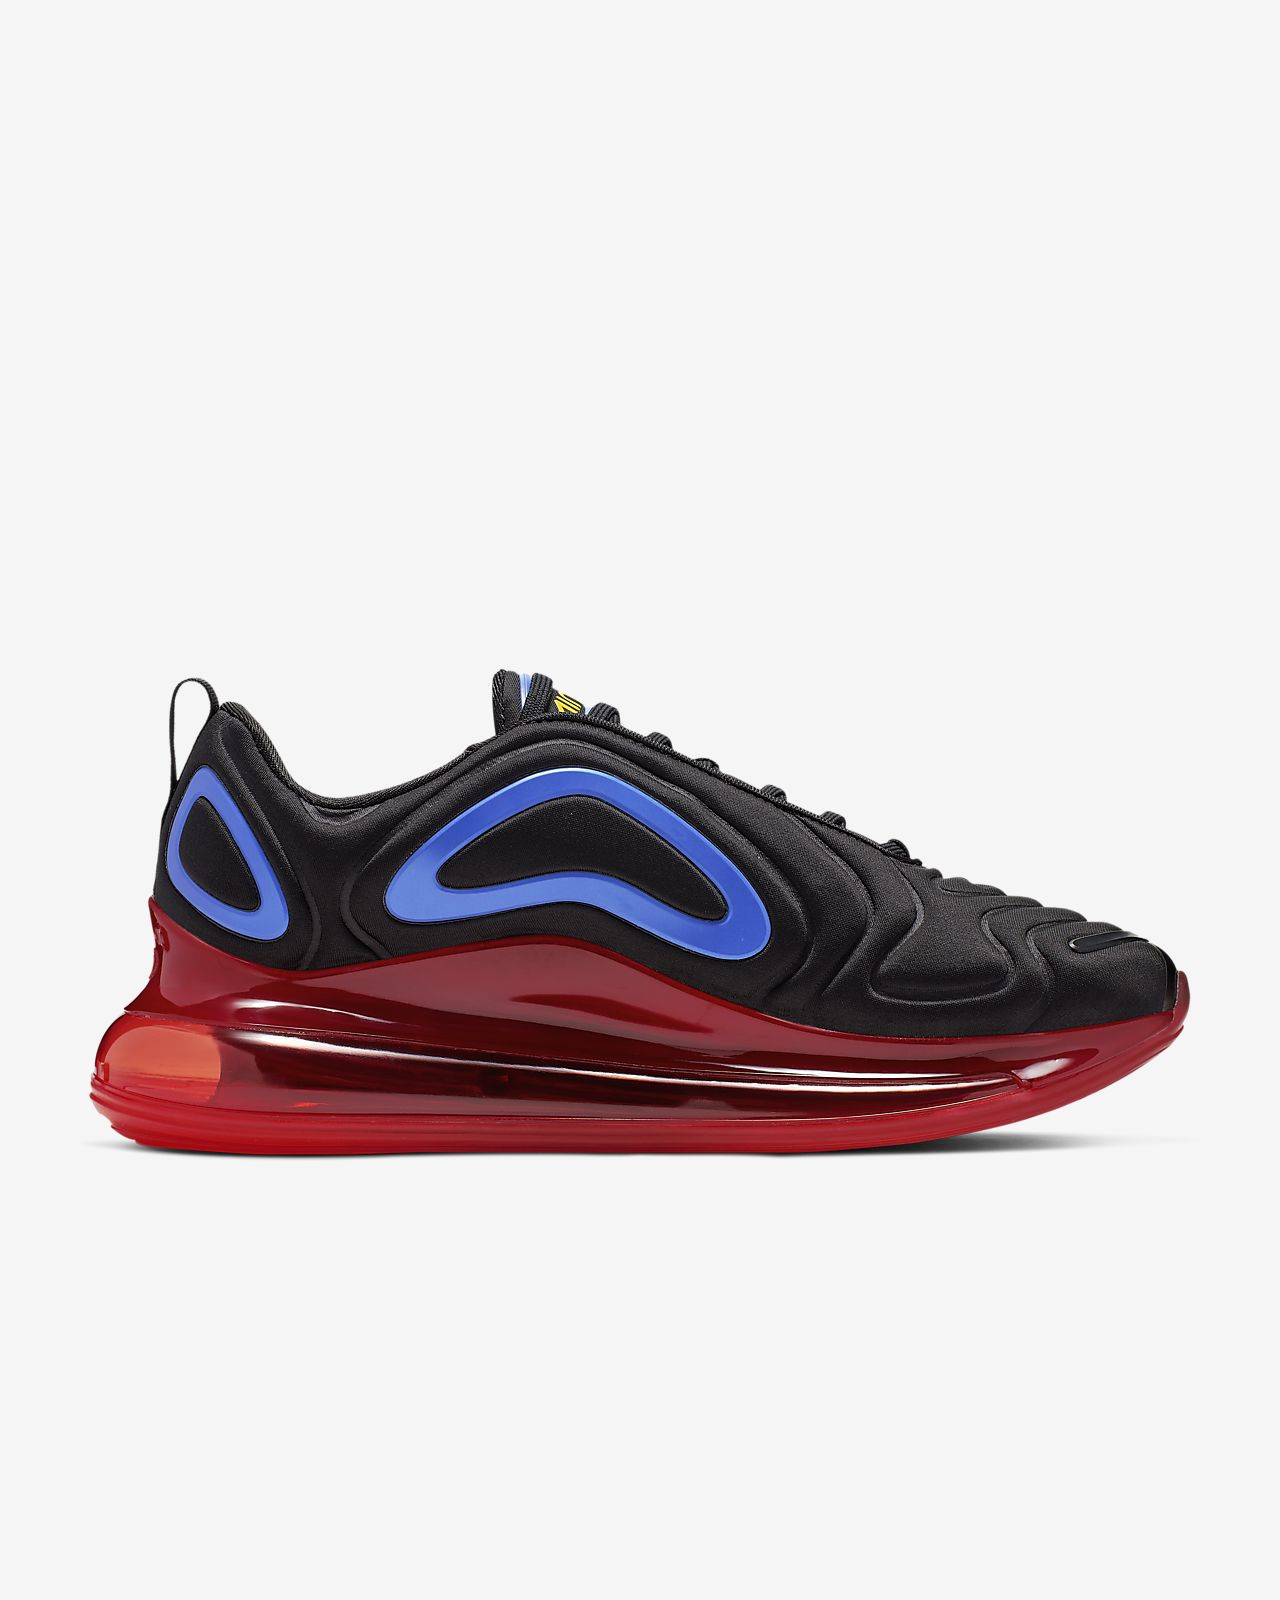 Nike Air Max 720 Chaussure pour Homme Femme Rouge Rouge